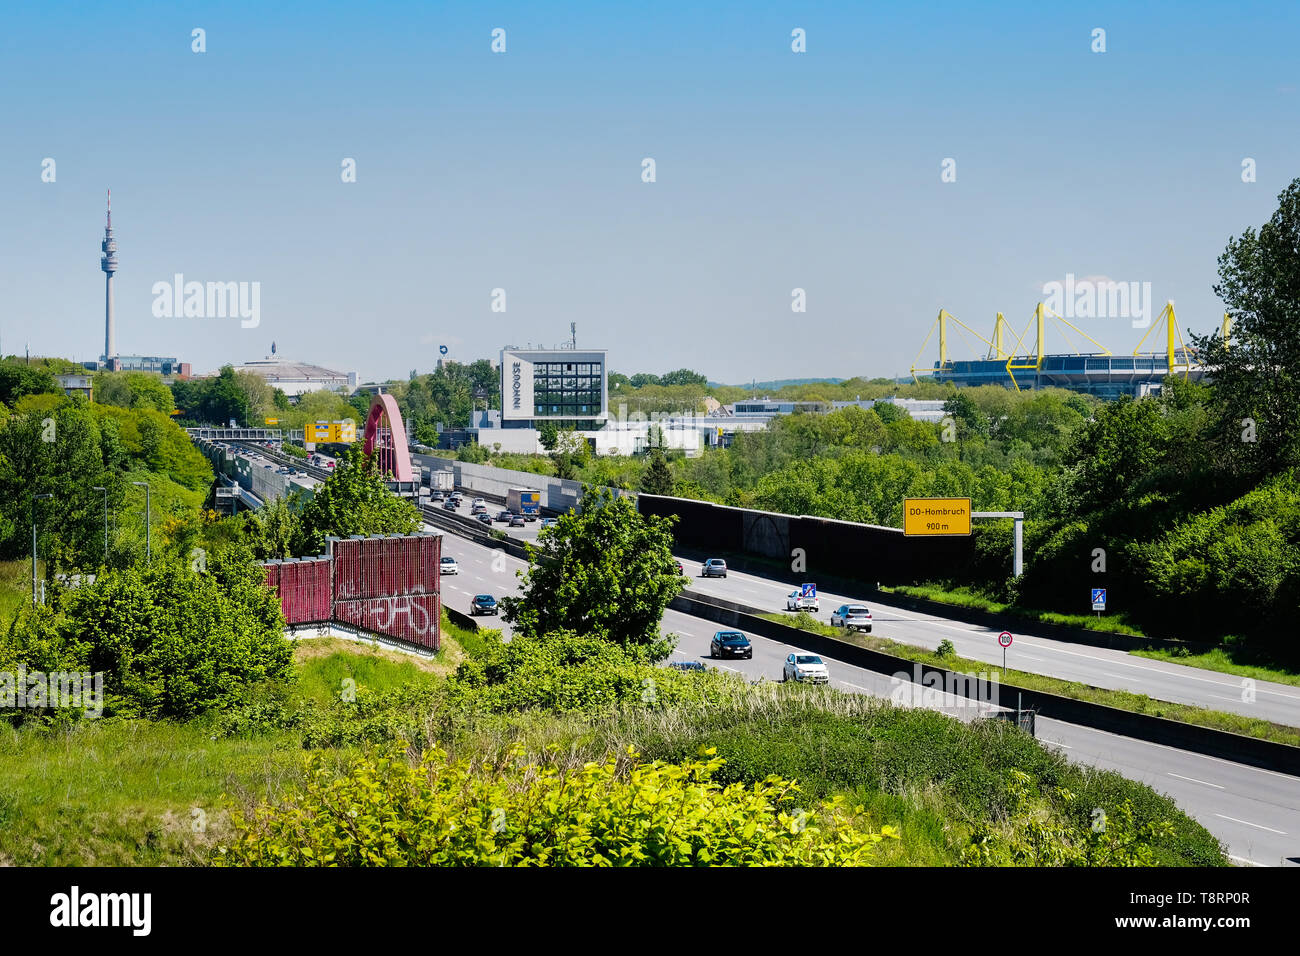 Skyline of Dortmund, with motorway A40 (Ruhrschnellweg) in Dortmund as federal highway No. 1 with football arena Westfalenstadion (Signal Iduna Park), Westfalenhalle and TV tower Florianturm in Westfalenpark. - Stock Image